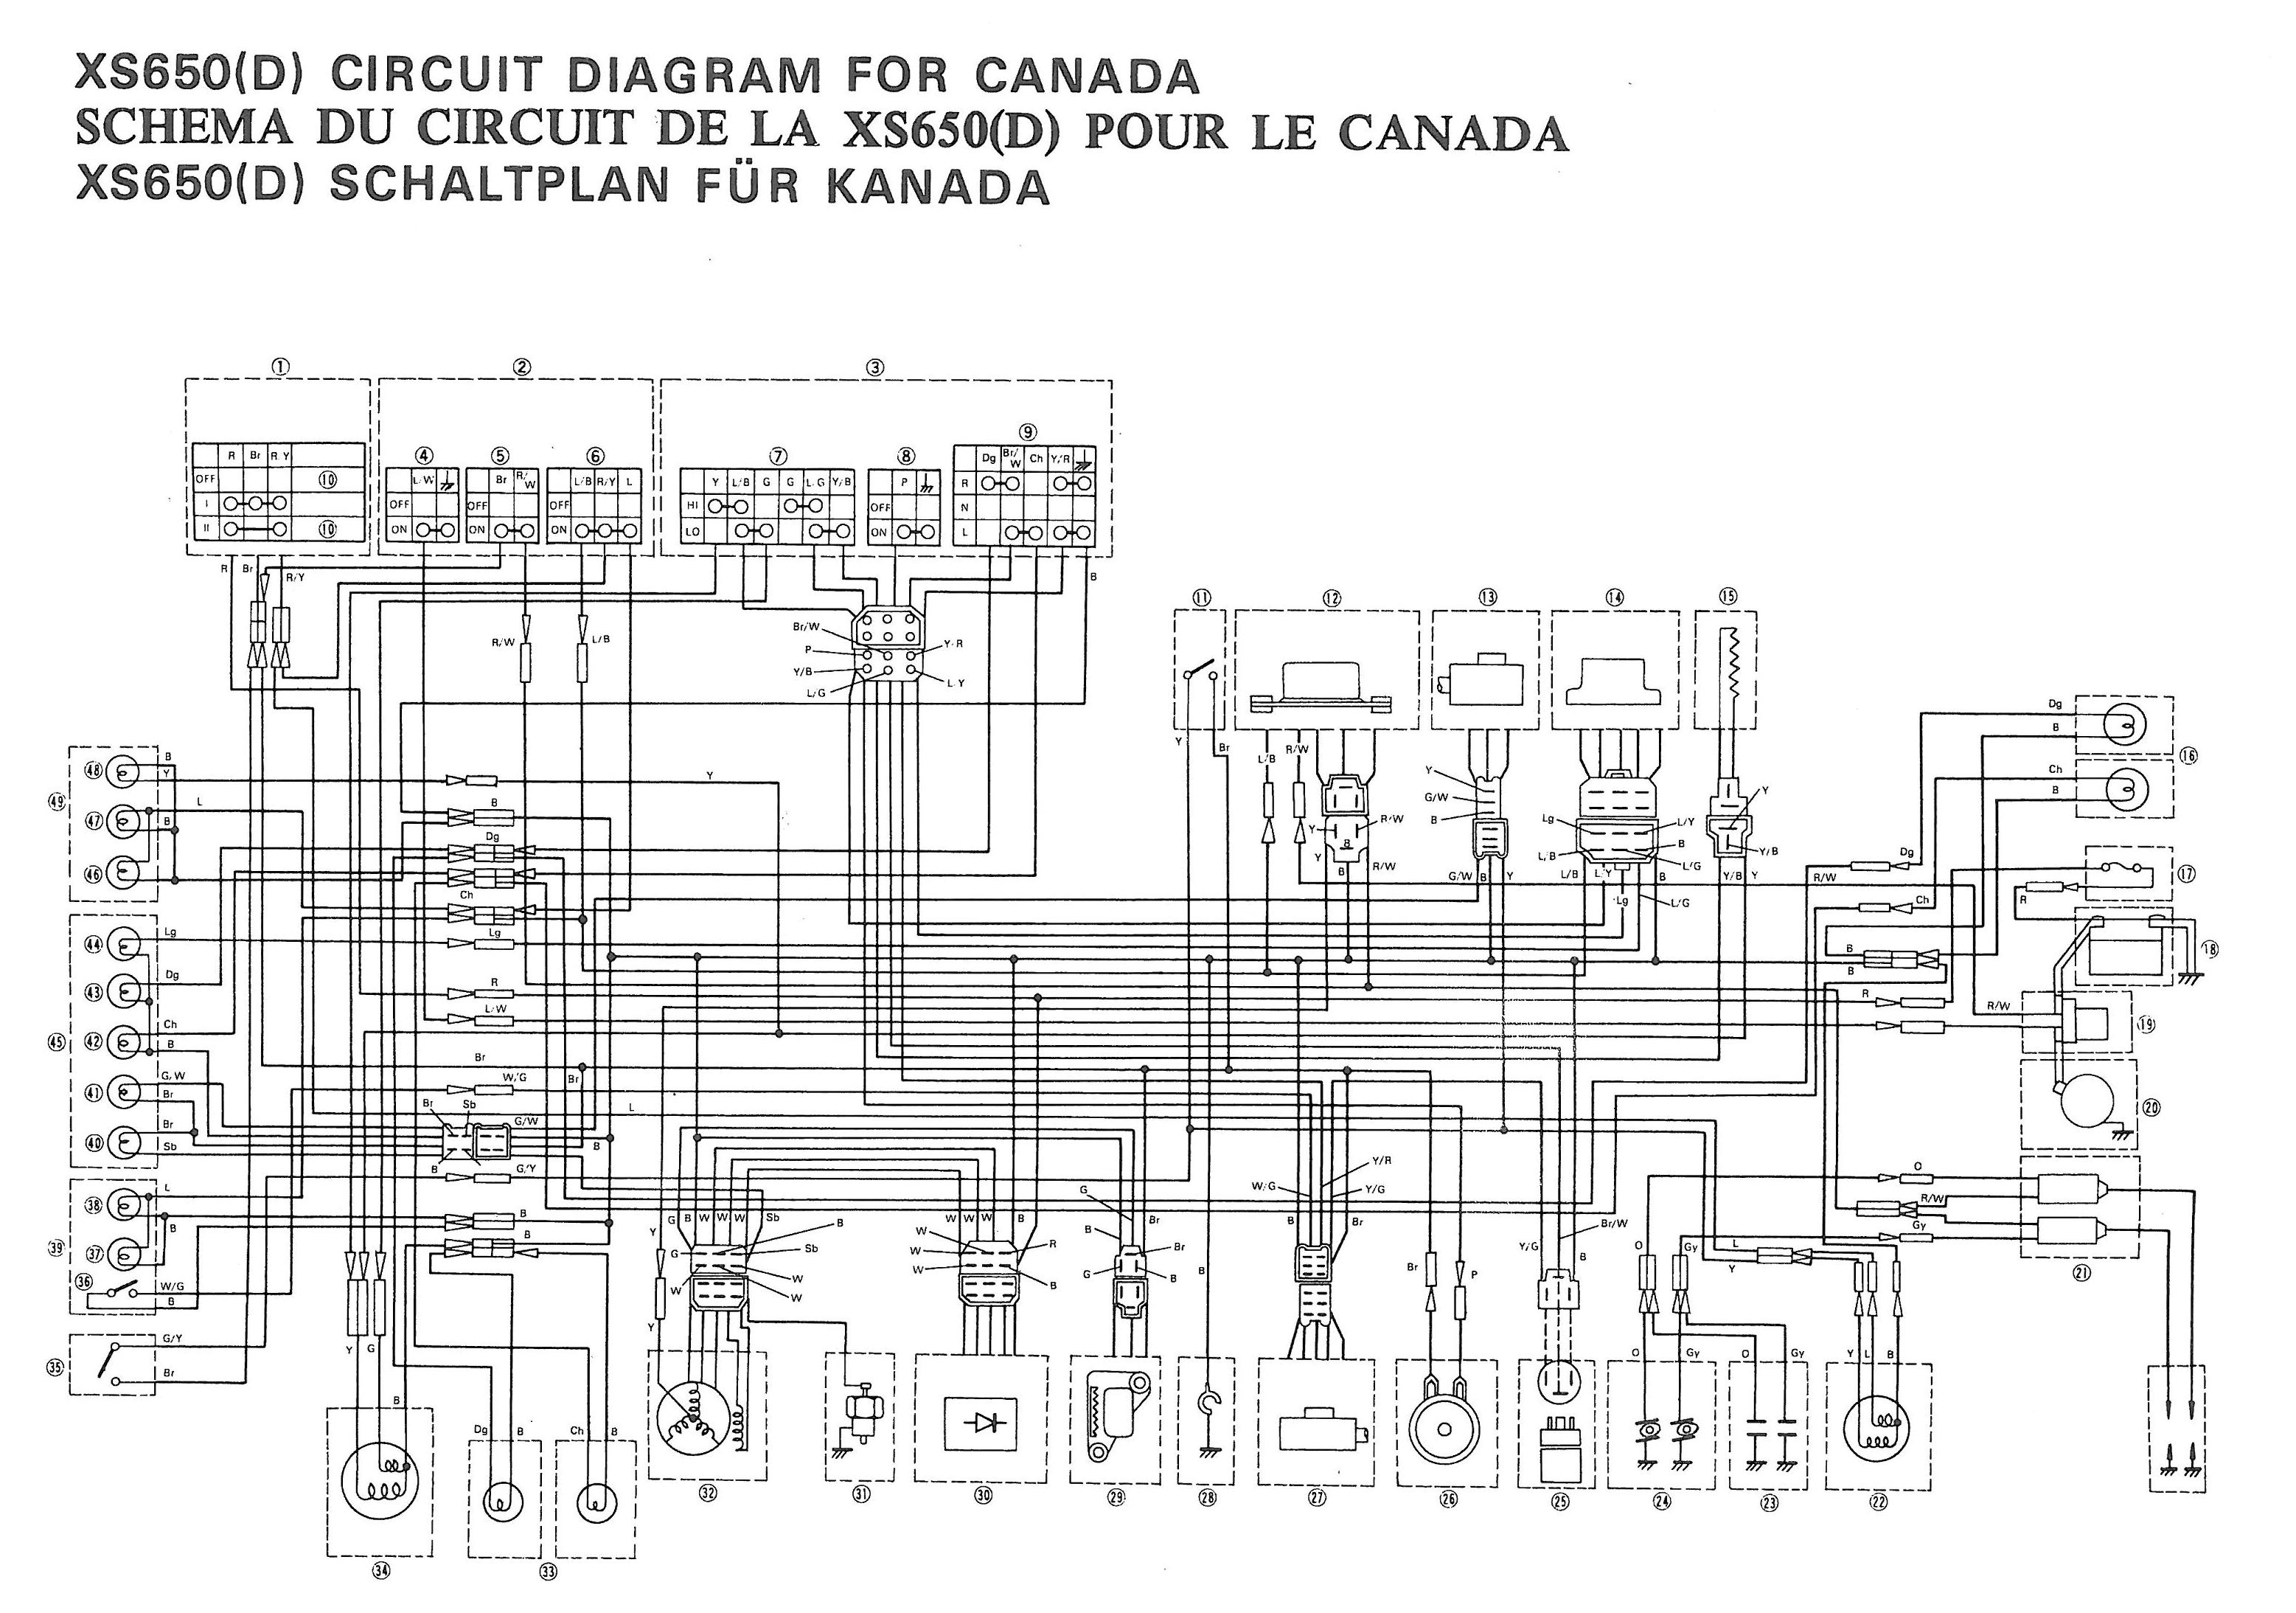 77 xs d wiring canada?w=1000&h=702 some wiring diagrams yamaha xs650 forum readingrat net 1978 yamaha xs650 wiring diagram at suagrazia.org